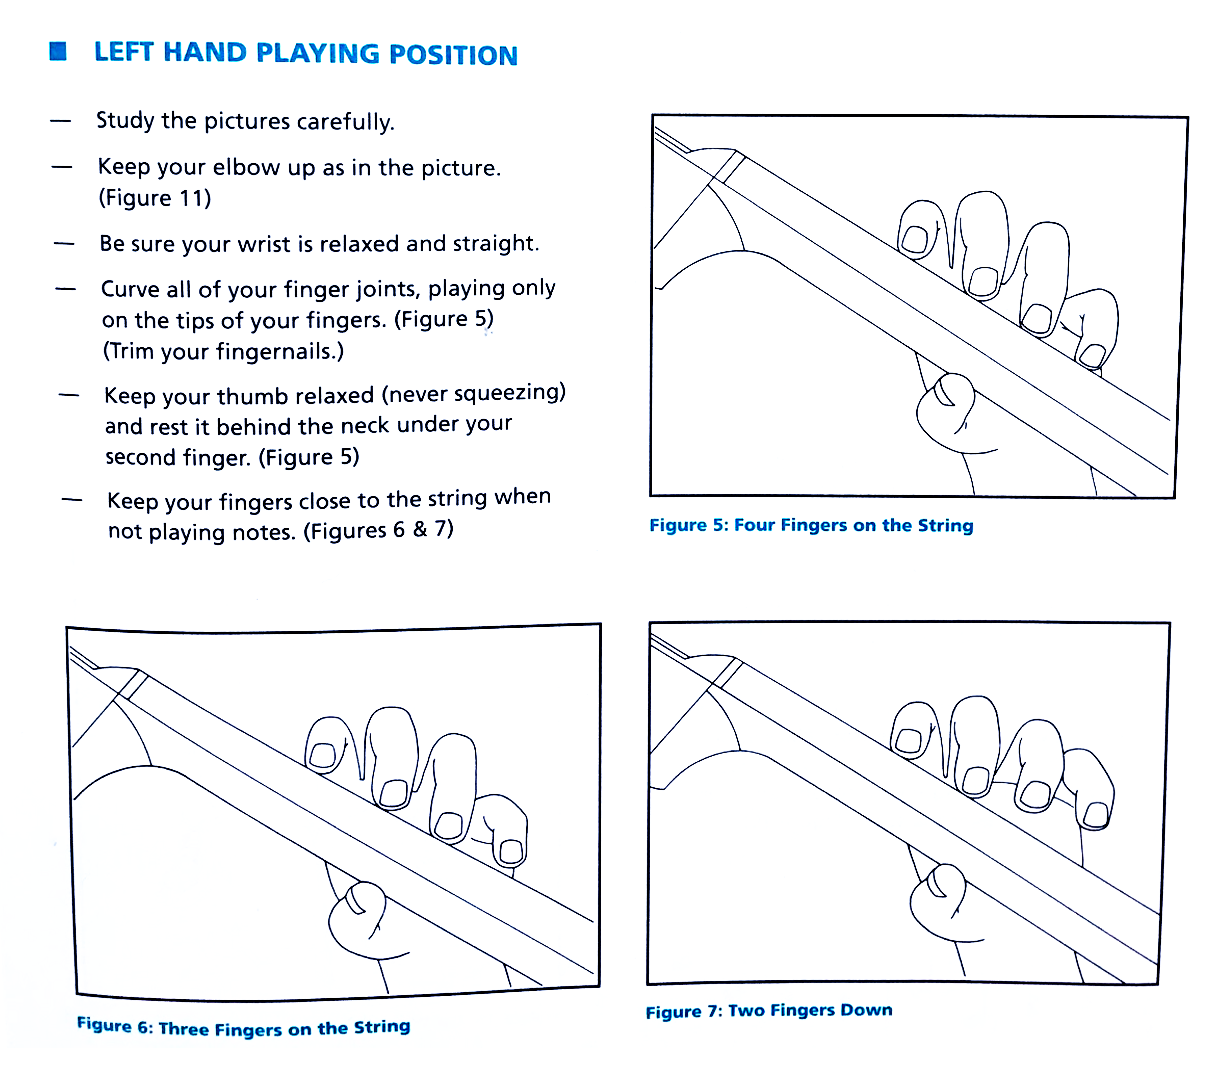 Left Hand Playing Position